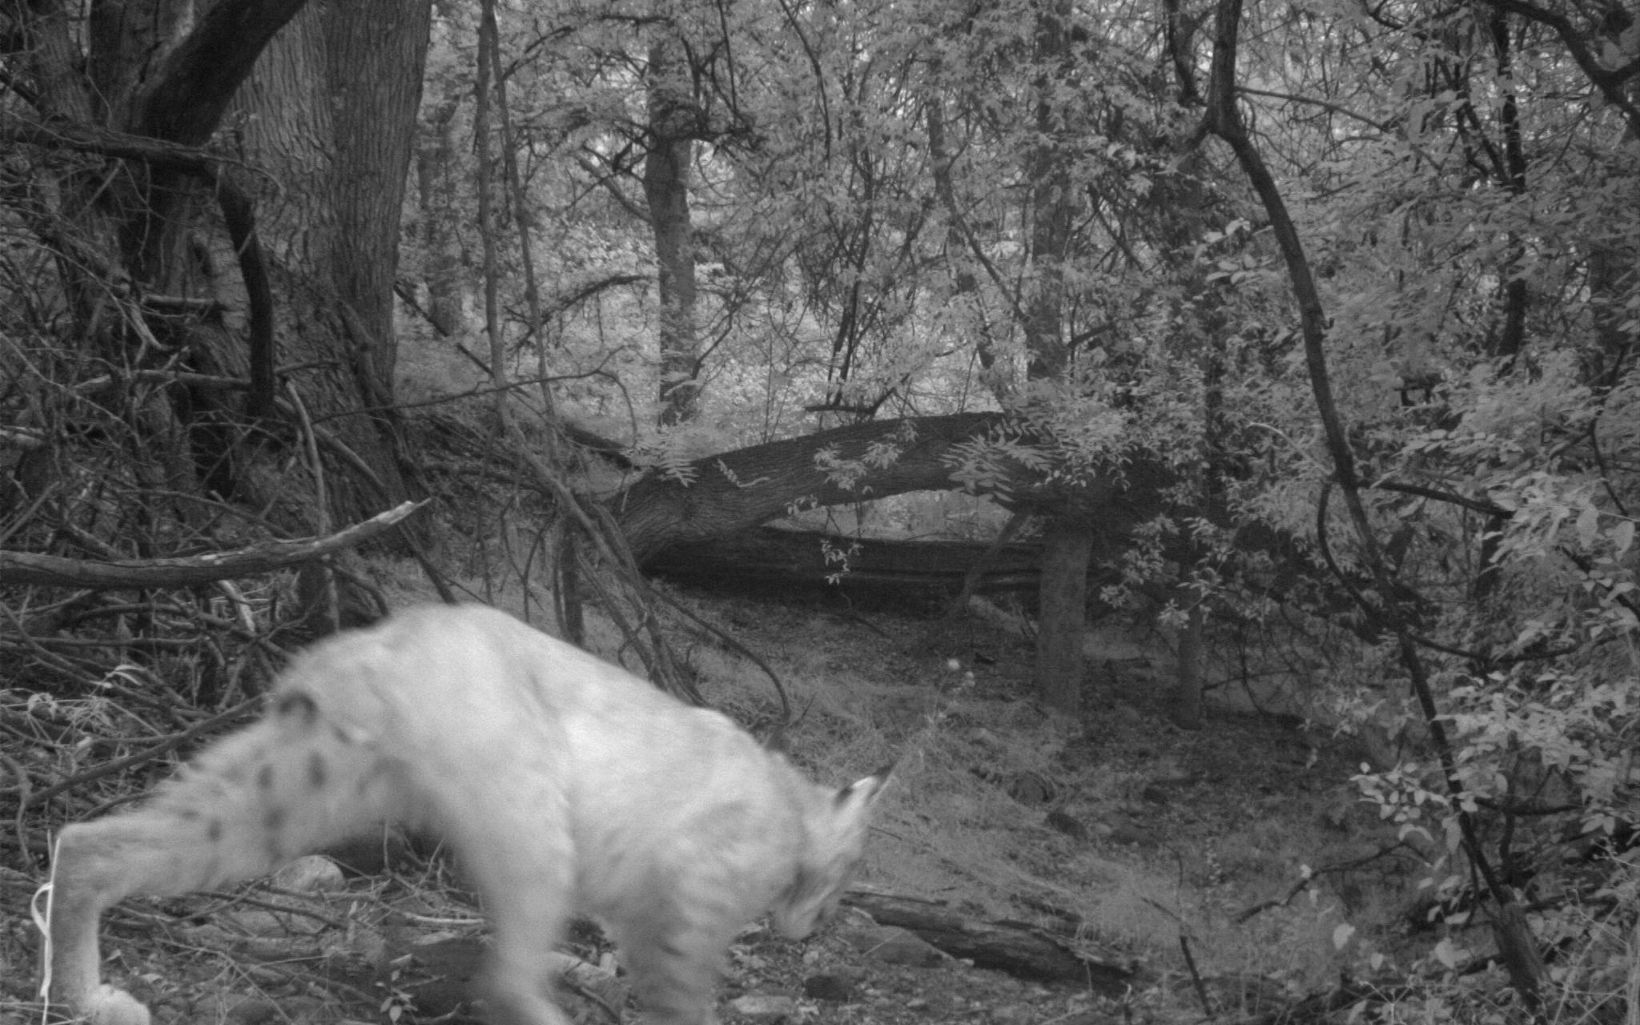 Bobcat at night walks in front of the trail camera